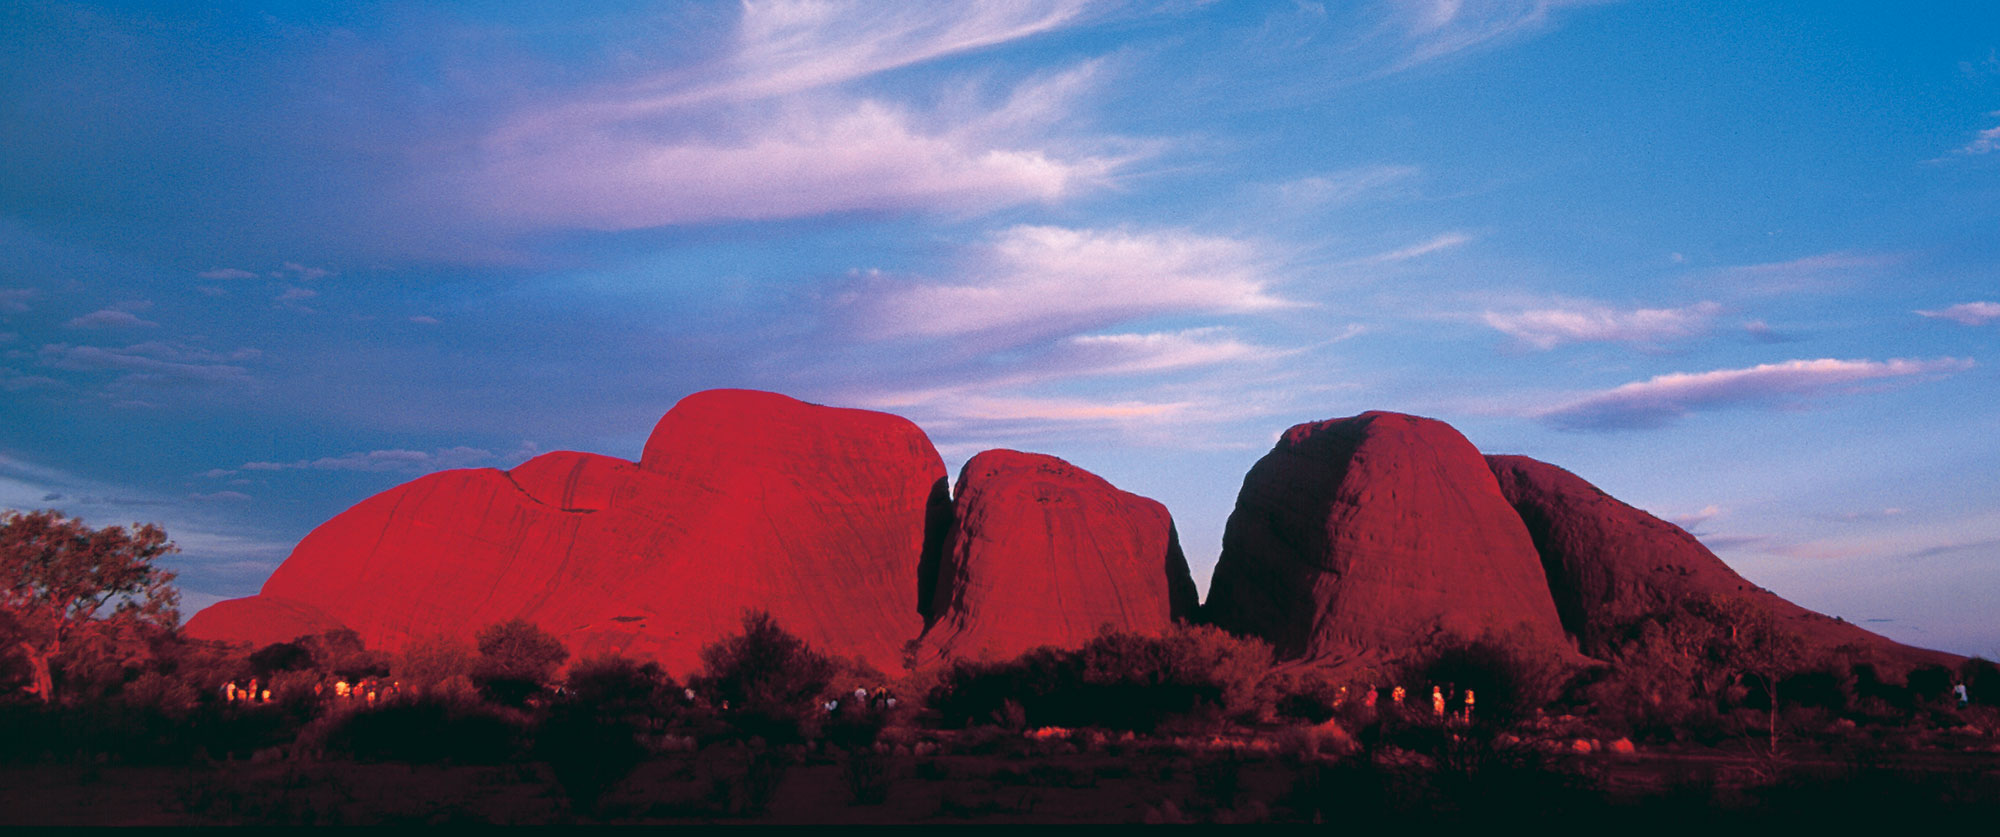 Australian Vacation - Once in a Lifetime Trip - Uluru Ayers Rock